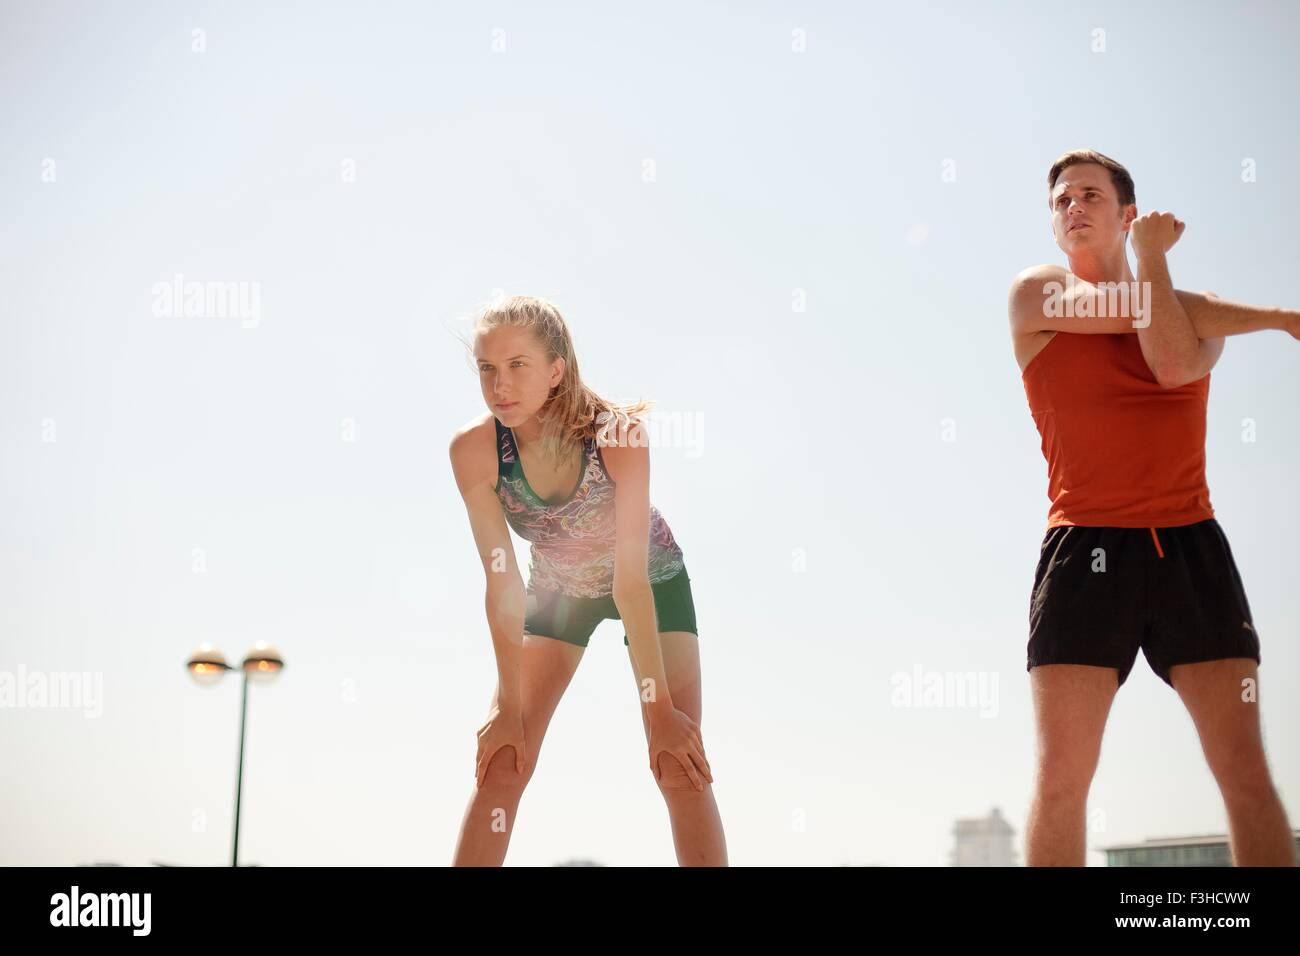 Runners stretching during exercise - Stock Image